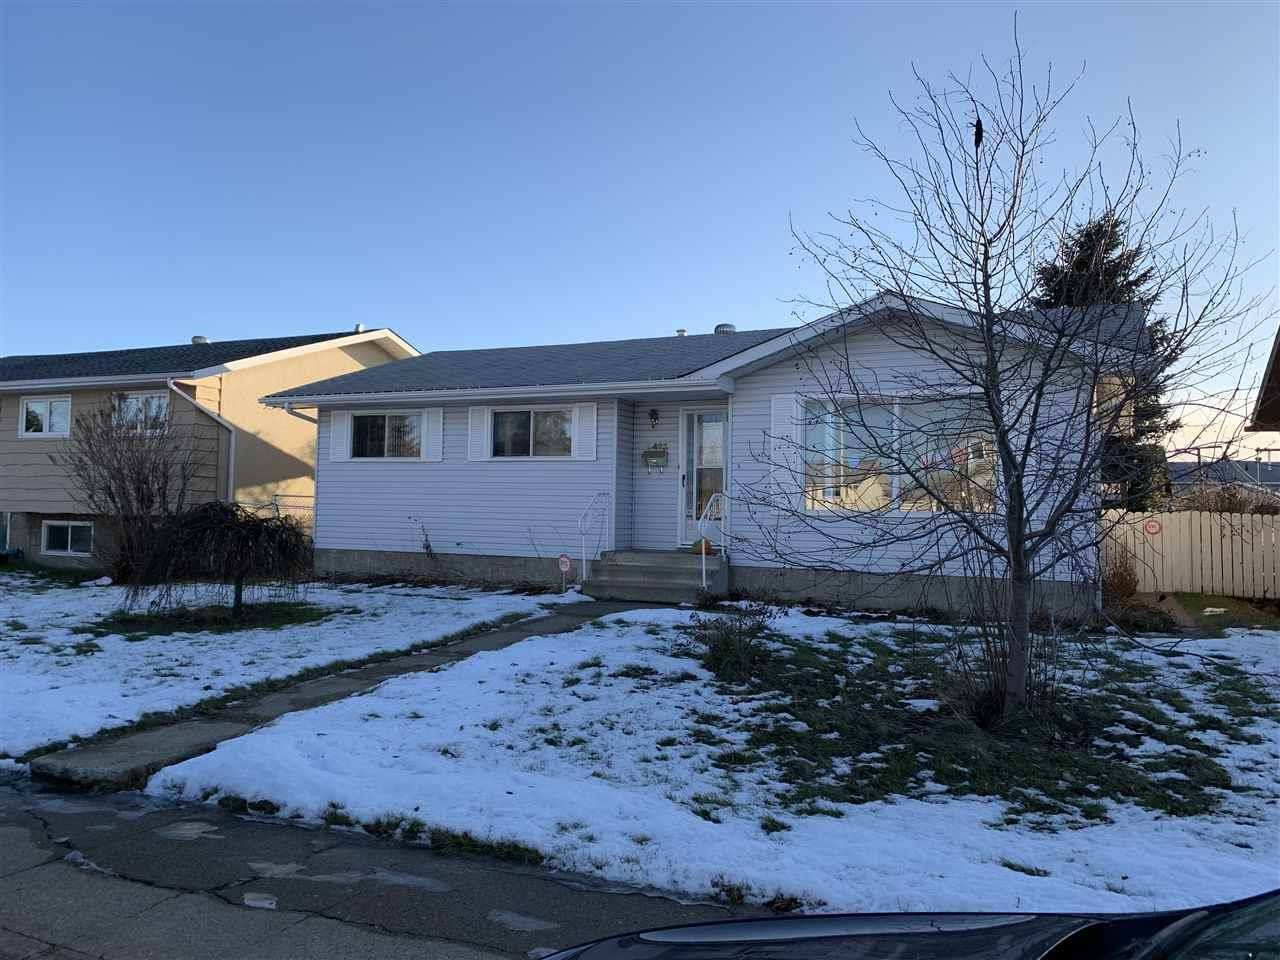 House for sale at 9423 144 Ave Nw Edmonton Alberta - MLS: E4180258